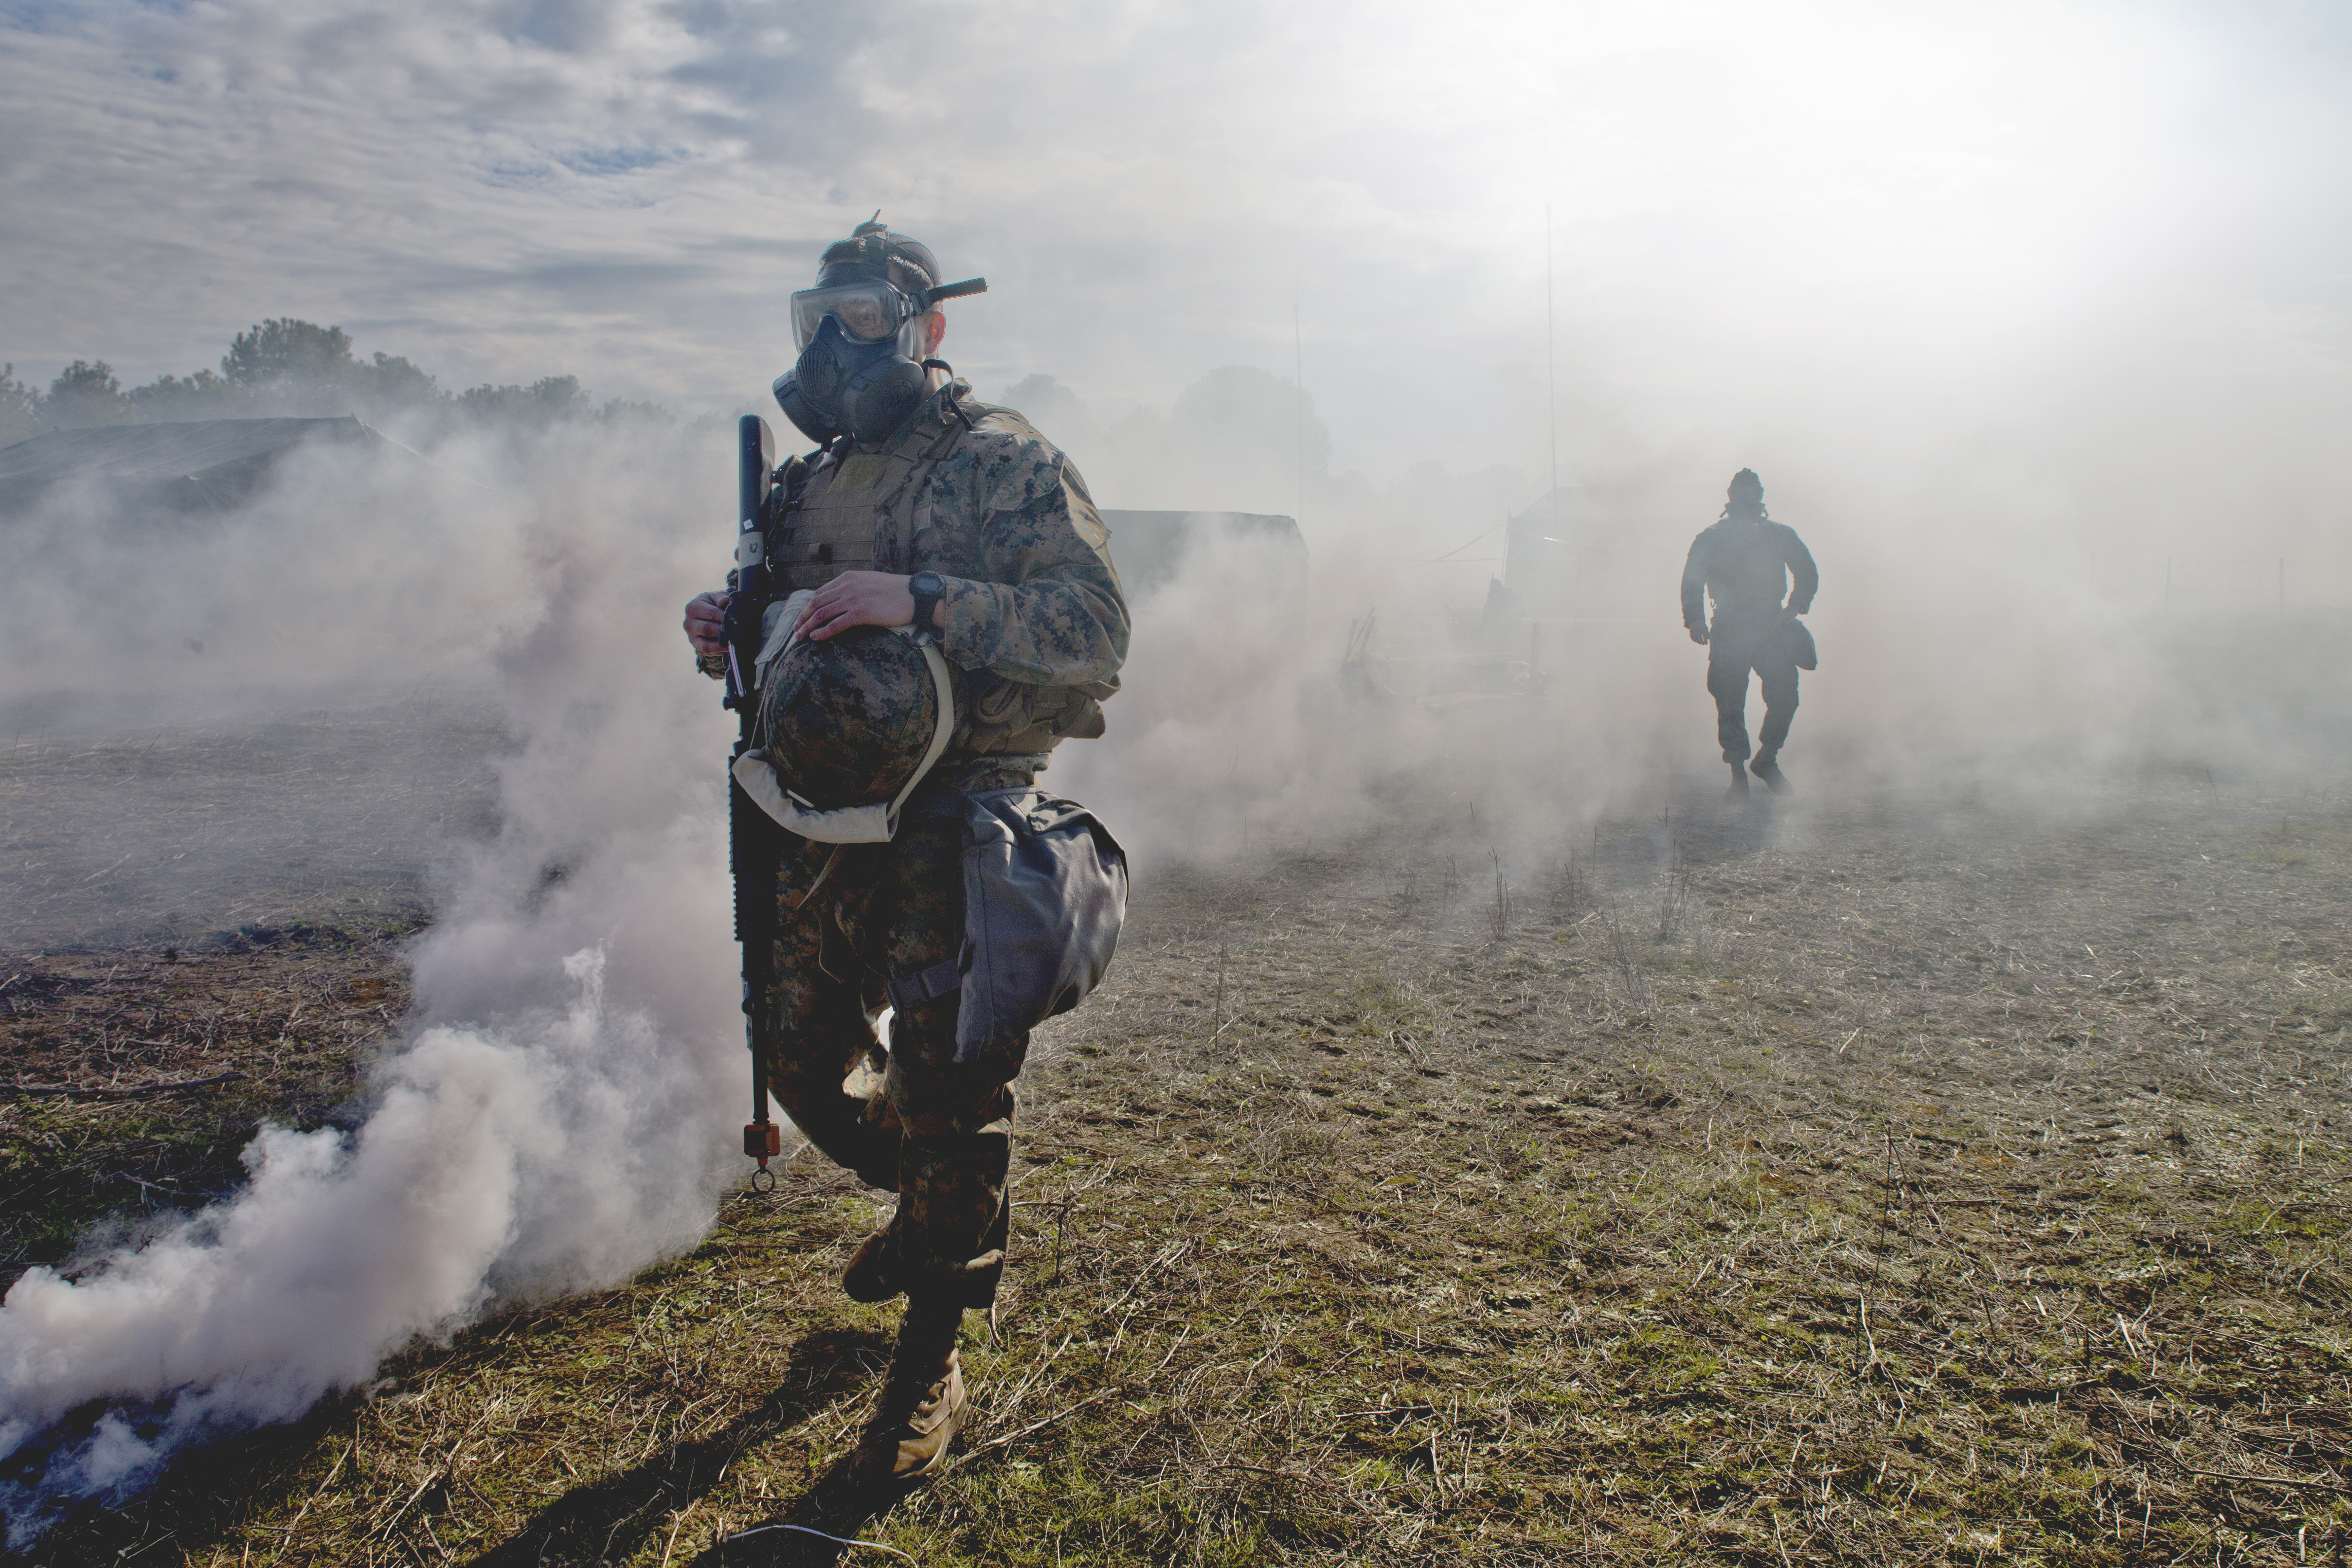 U.S. Marines with Special-Purpose Marine Air-Ground Task Force-Crisis Response-Africa, logistics combat element, simulate a gas attack during a field exercise at Morón Air Base, Spain, Feb. 7, 2018. SPMAGTF-CR-AF is deployed to conduct limited crisis-response and theater-security operations in Europe and North Africa. (U.S. Marine Corps photo by Sgt. Takoune H. Norasingh/Released)